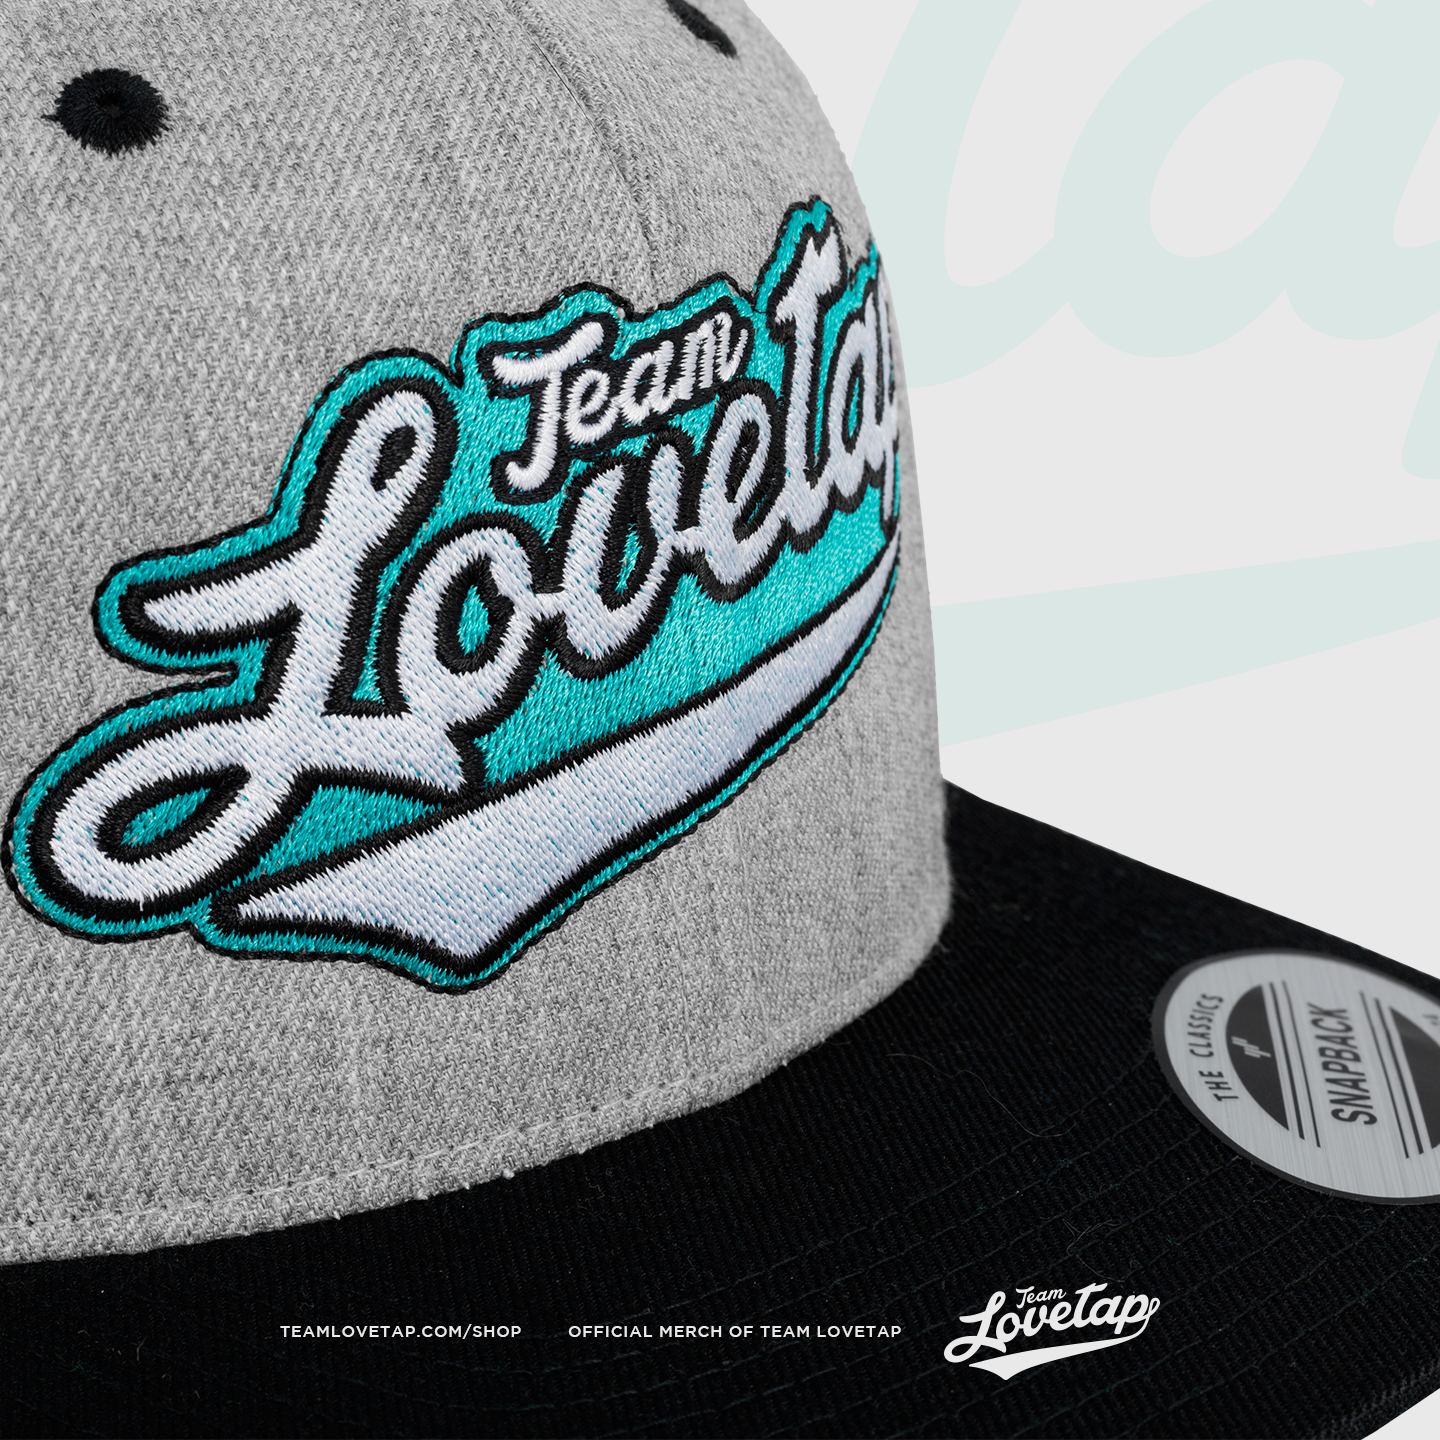 snapback_black_lightgray_teamlovetap_06.jpg